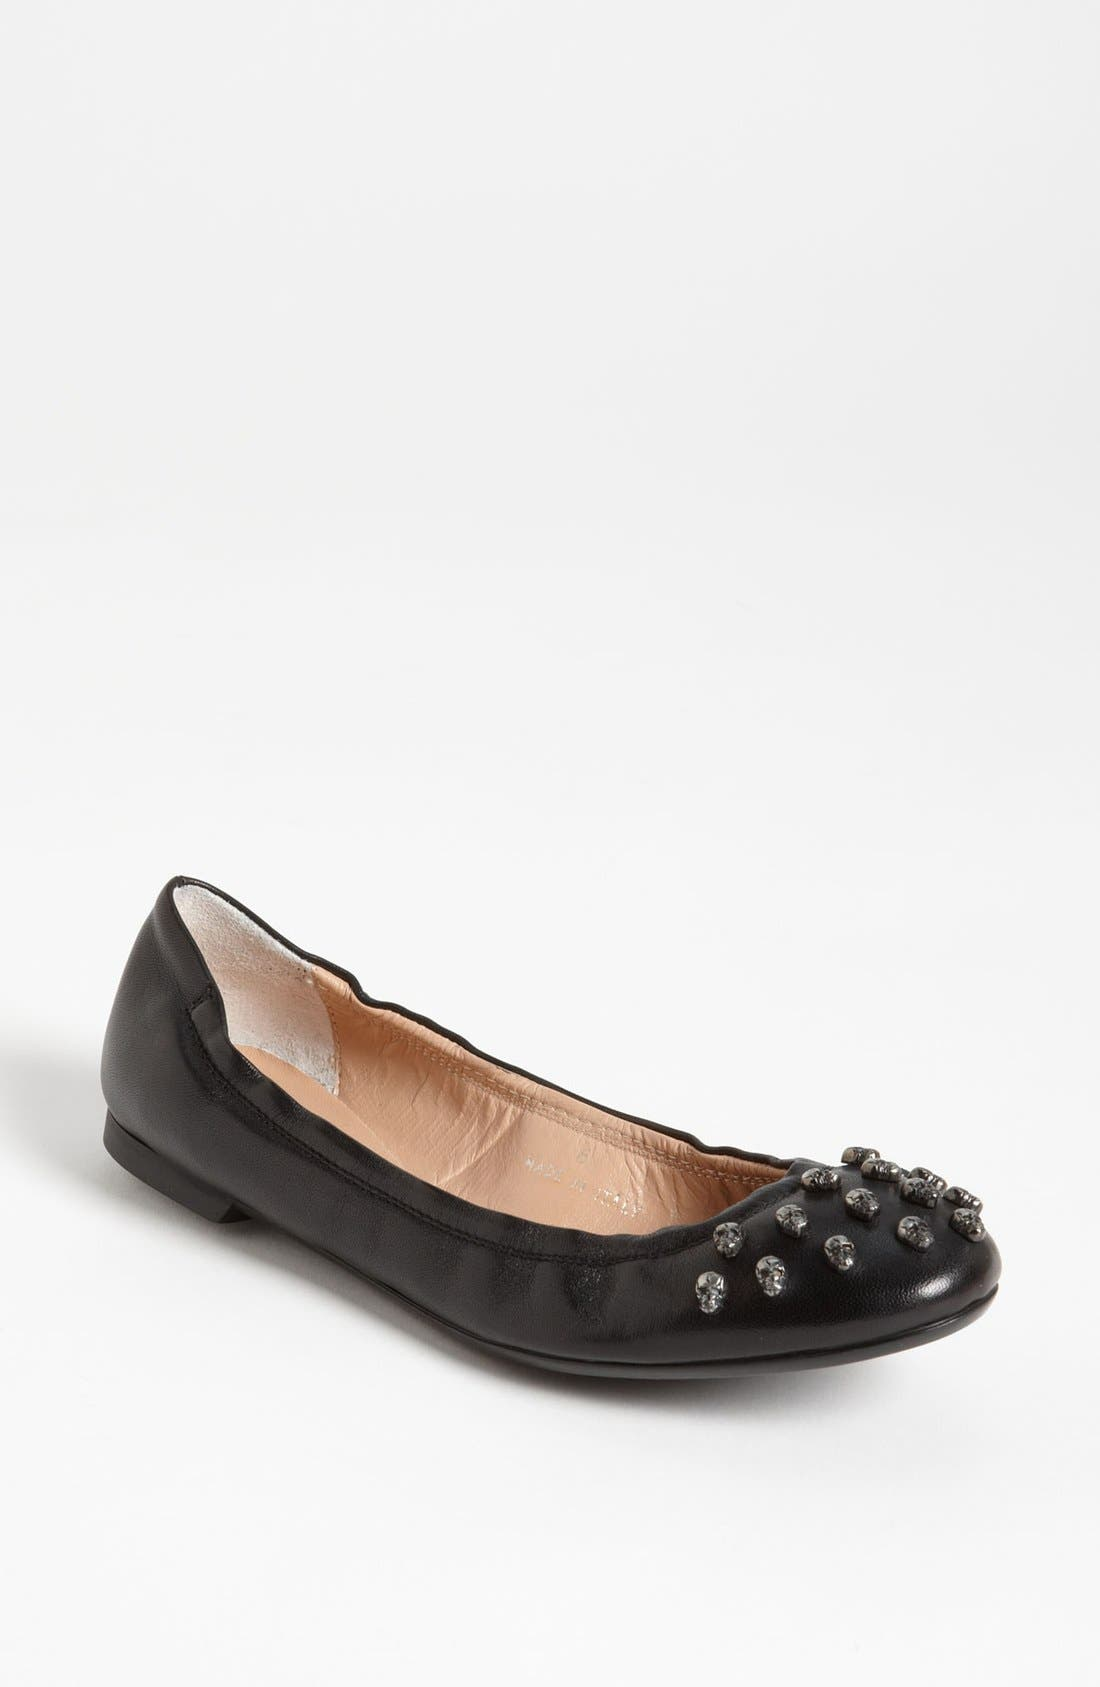 Alternate Image 1 Selected - Sweet Ballerina Skull Studded Ballet Flat